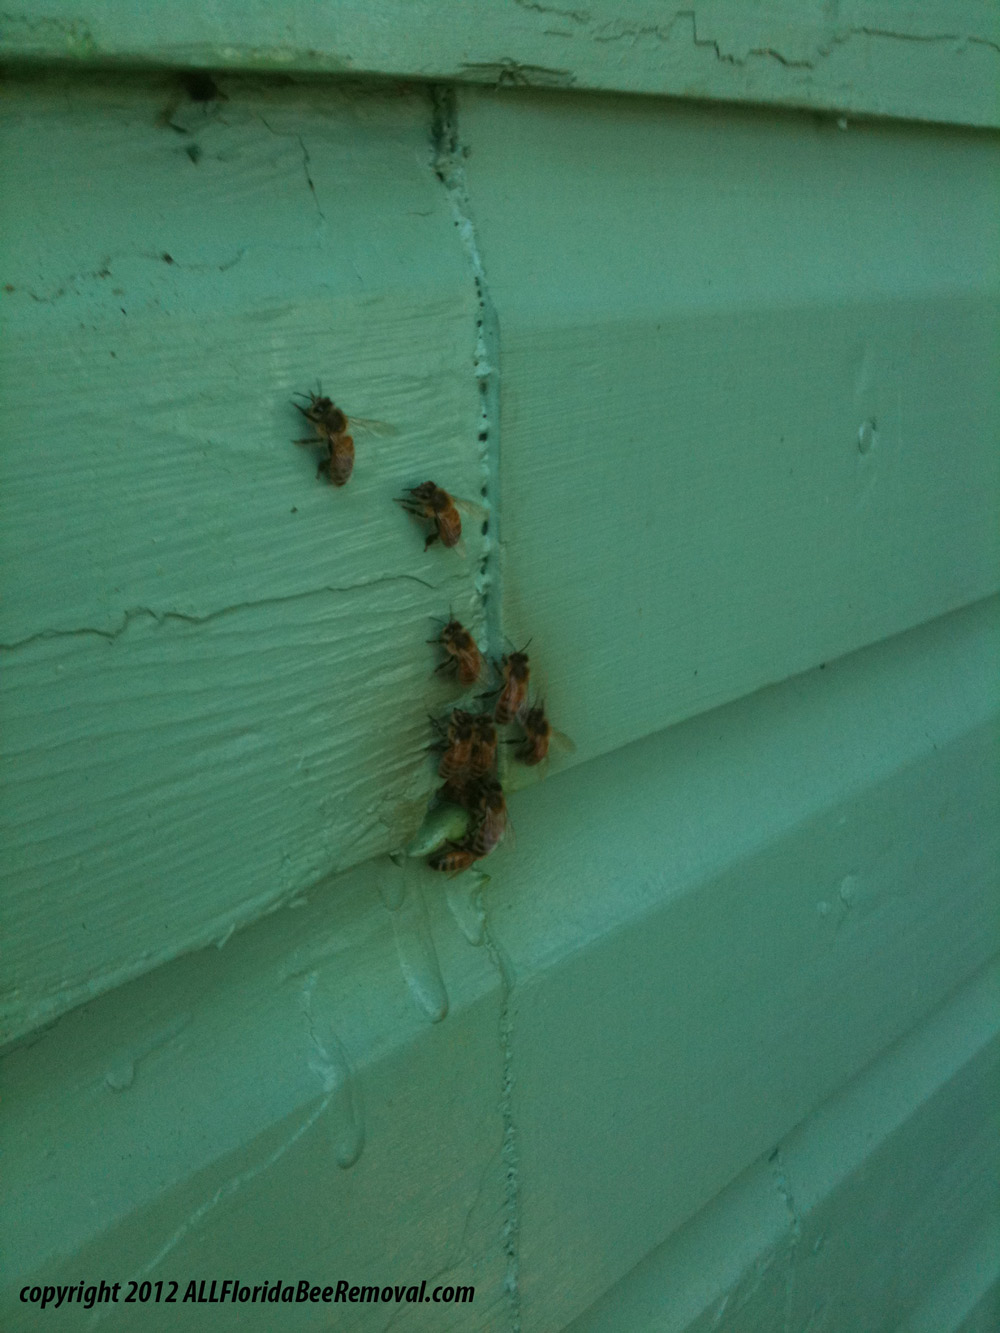 Bee Removal from Walls Call Toll Free 1-855-930-BEES (2337)